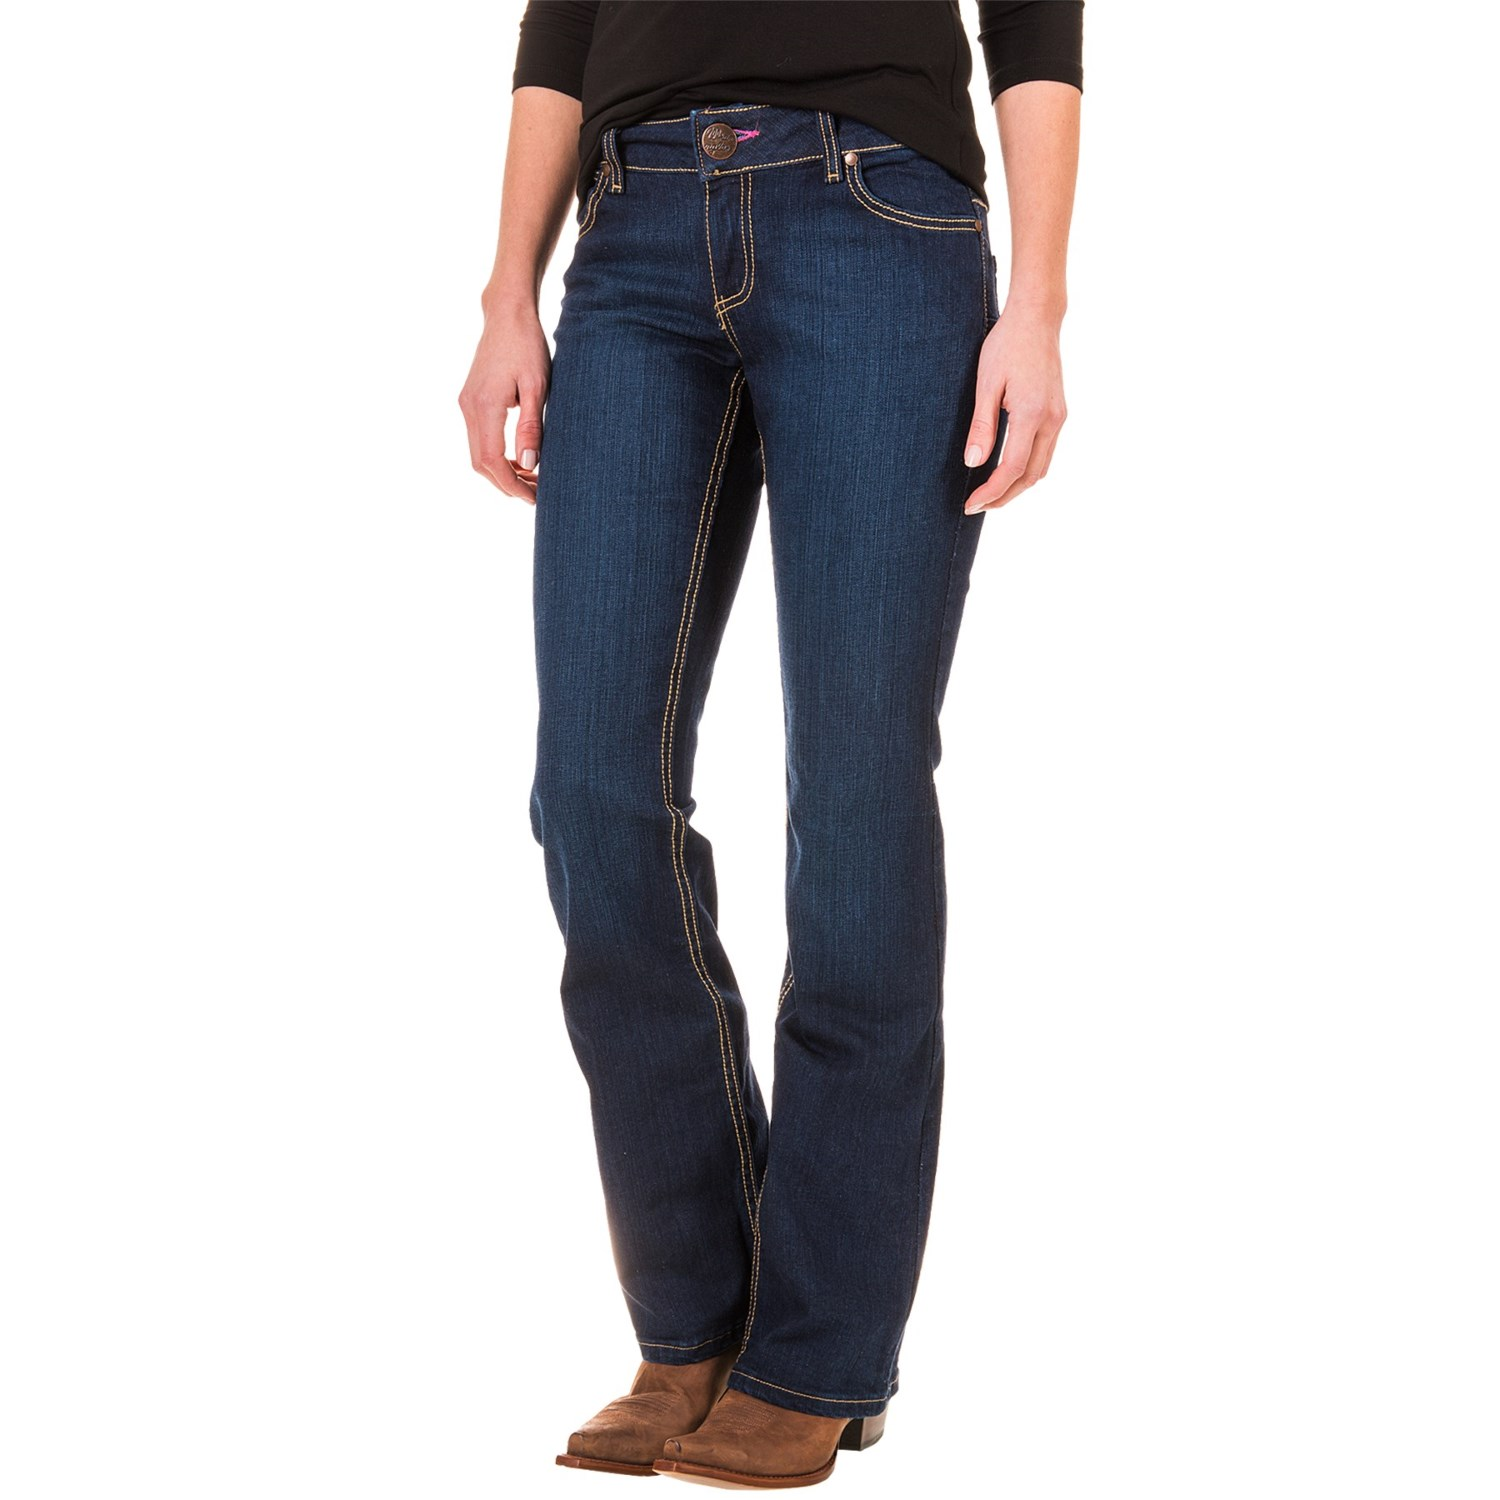 Because we know brand is often just as important as the style, we carry women's jeans from popular and premium denim labels, including 7 For All Mankind, AG Adriano Goldschmied, Joe's Jeans, Levi's, NYDJ, PAIGE, and more.